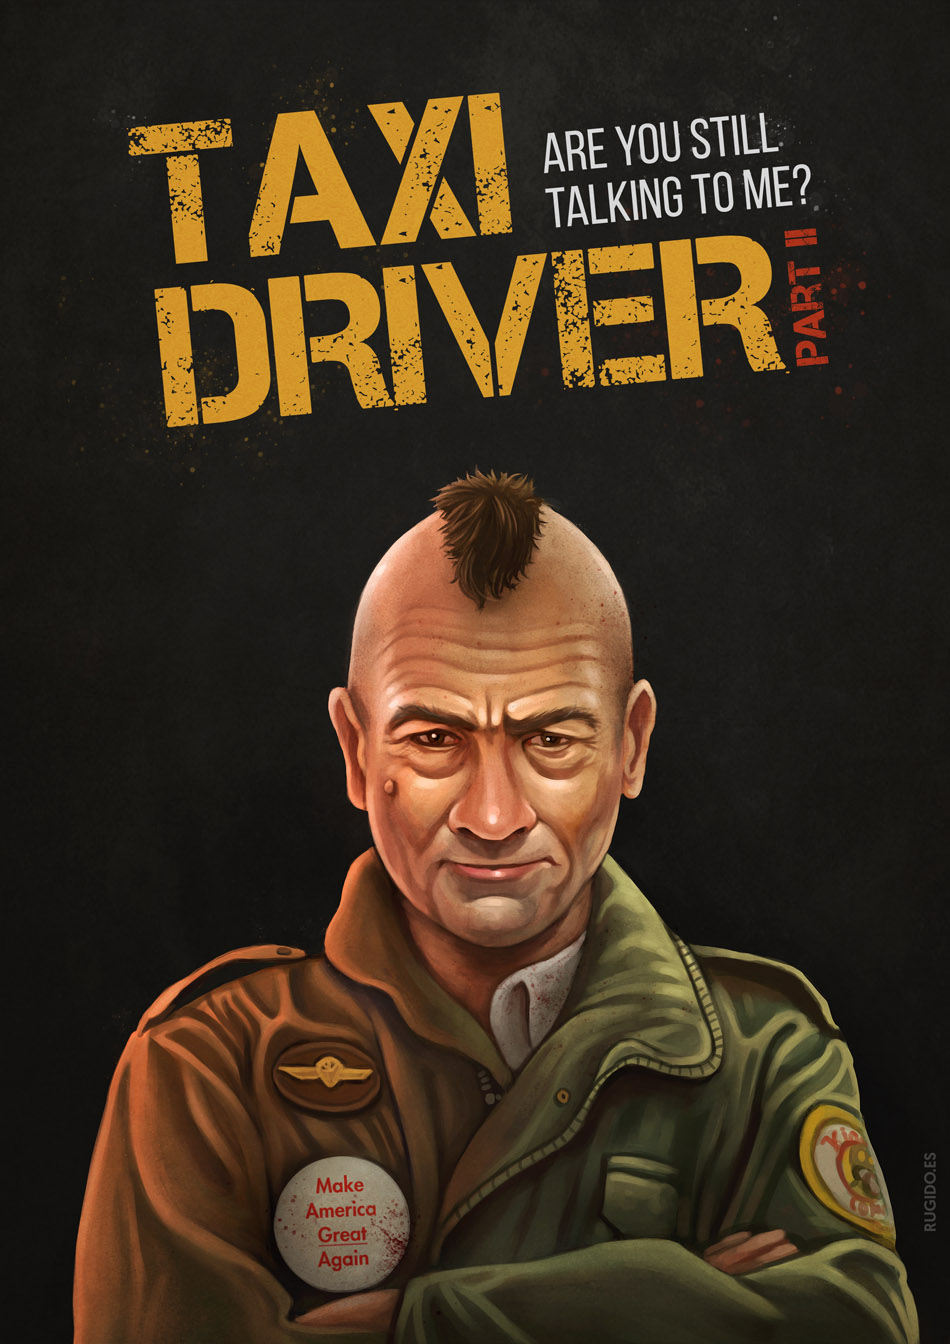 Taxi Driver 2 movie poster